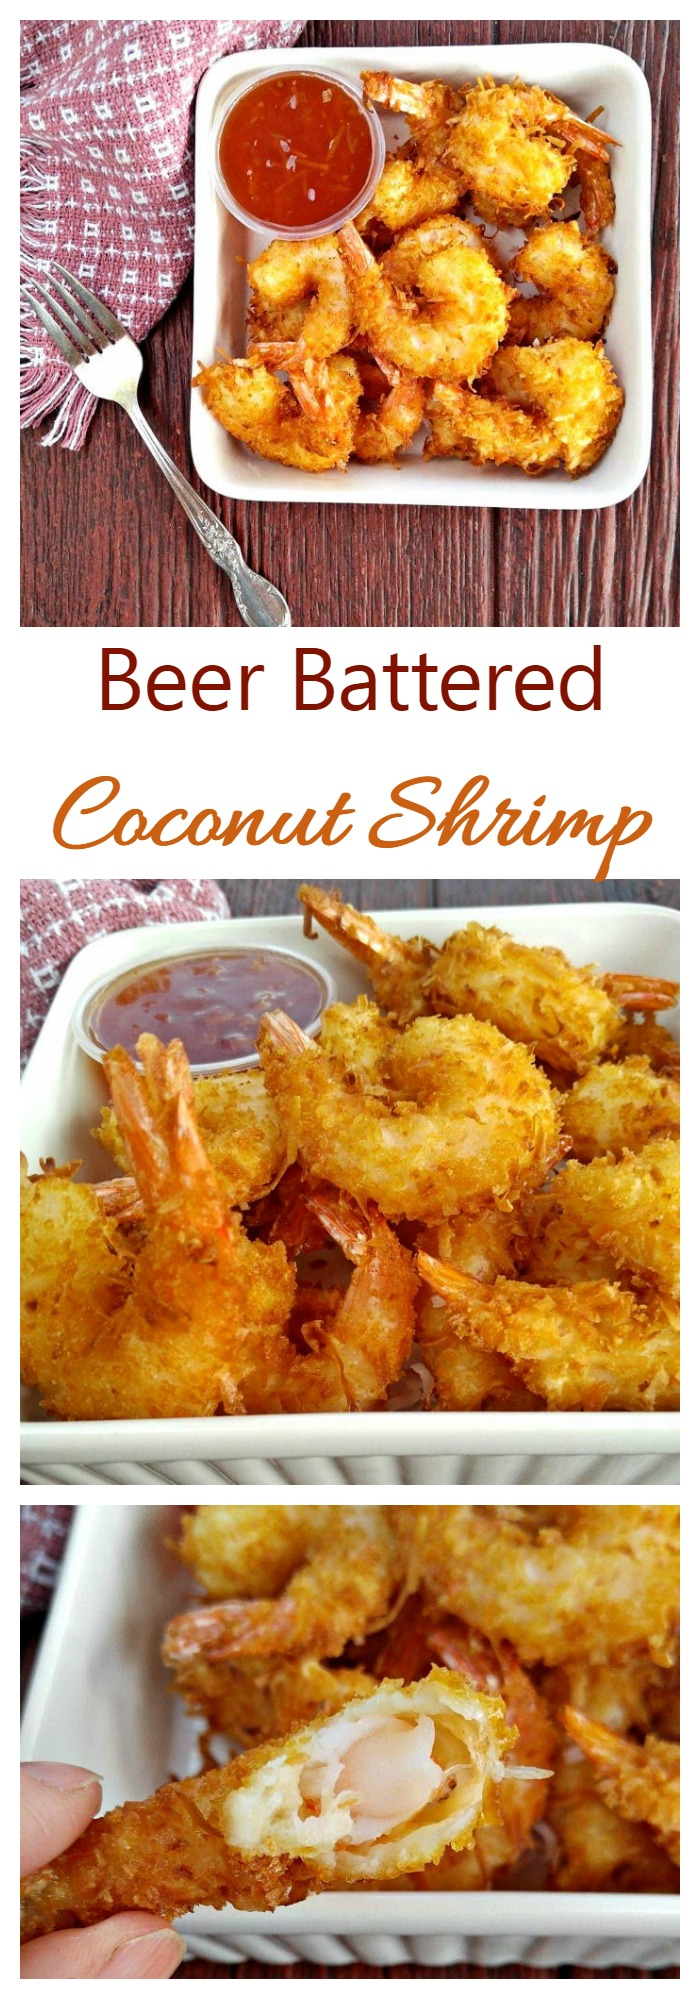 Easy Beer Battered Coconut Shrimp